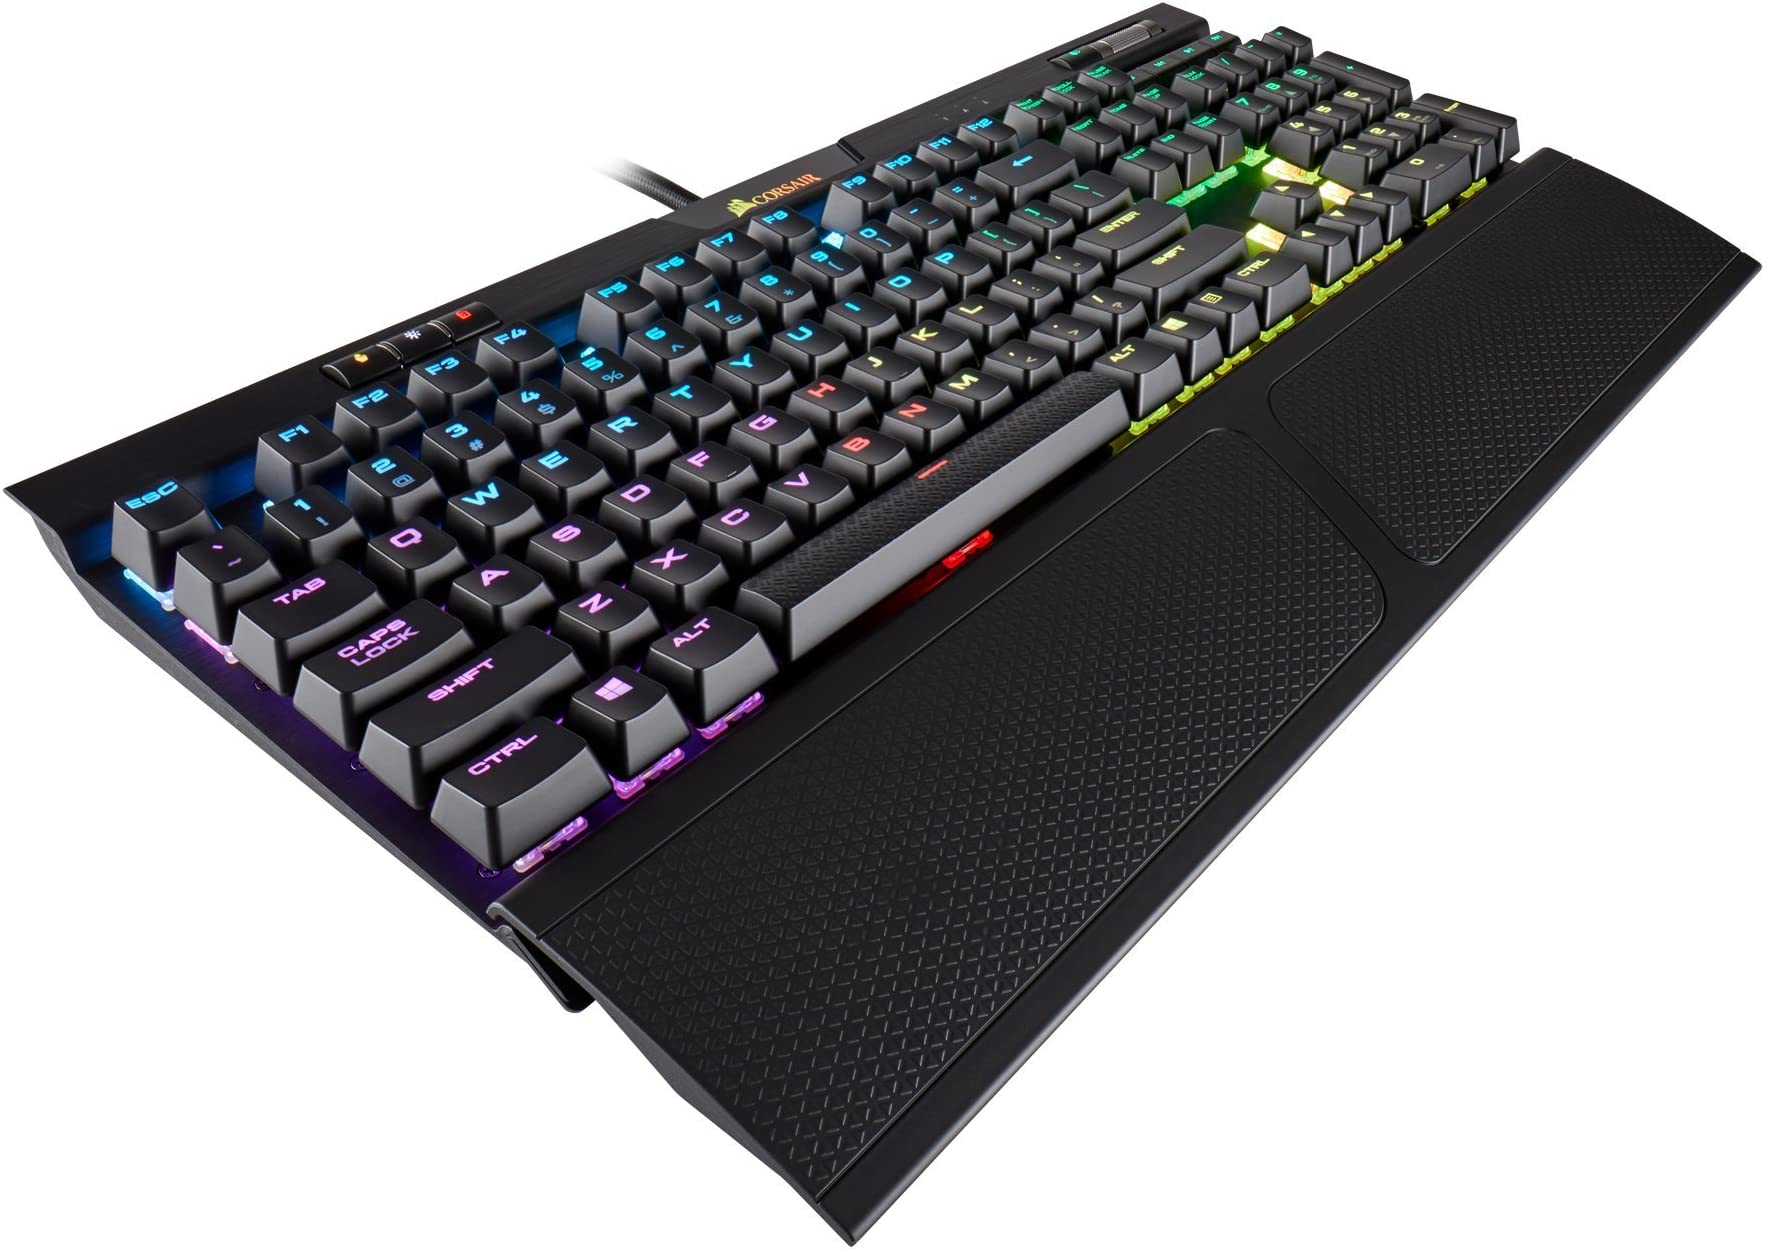 CORSAIR K70 RGB MK.2 Mechanical Gaming Keyboard - USB Passthrough & Media Controls - Tactile & Clicky - Cherry MX Blue - RGB LED Backlit, CH-9109011-NA